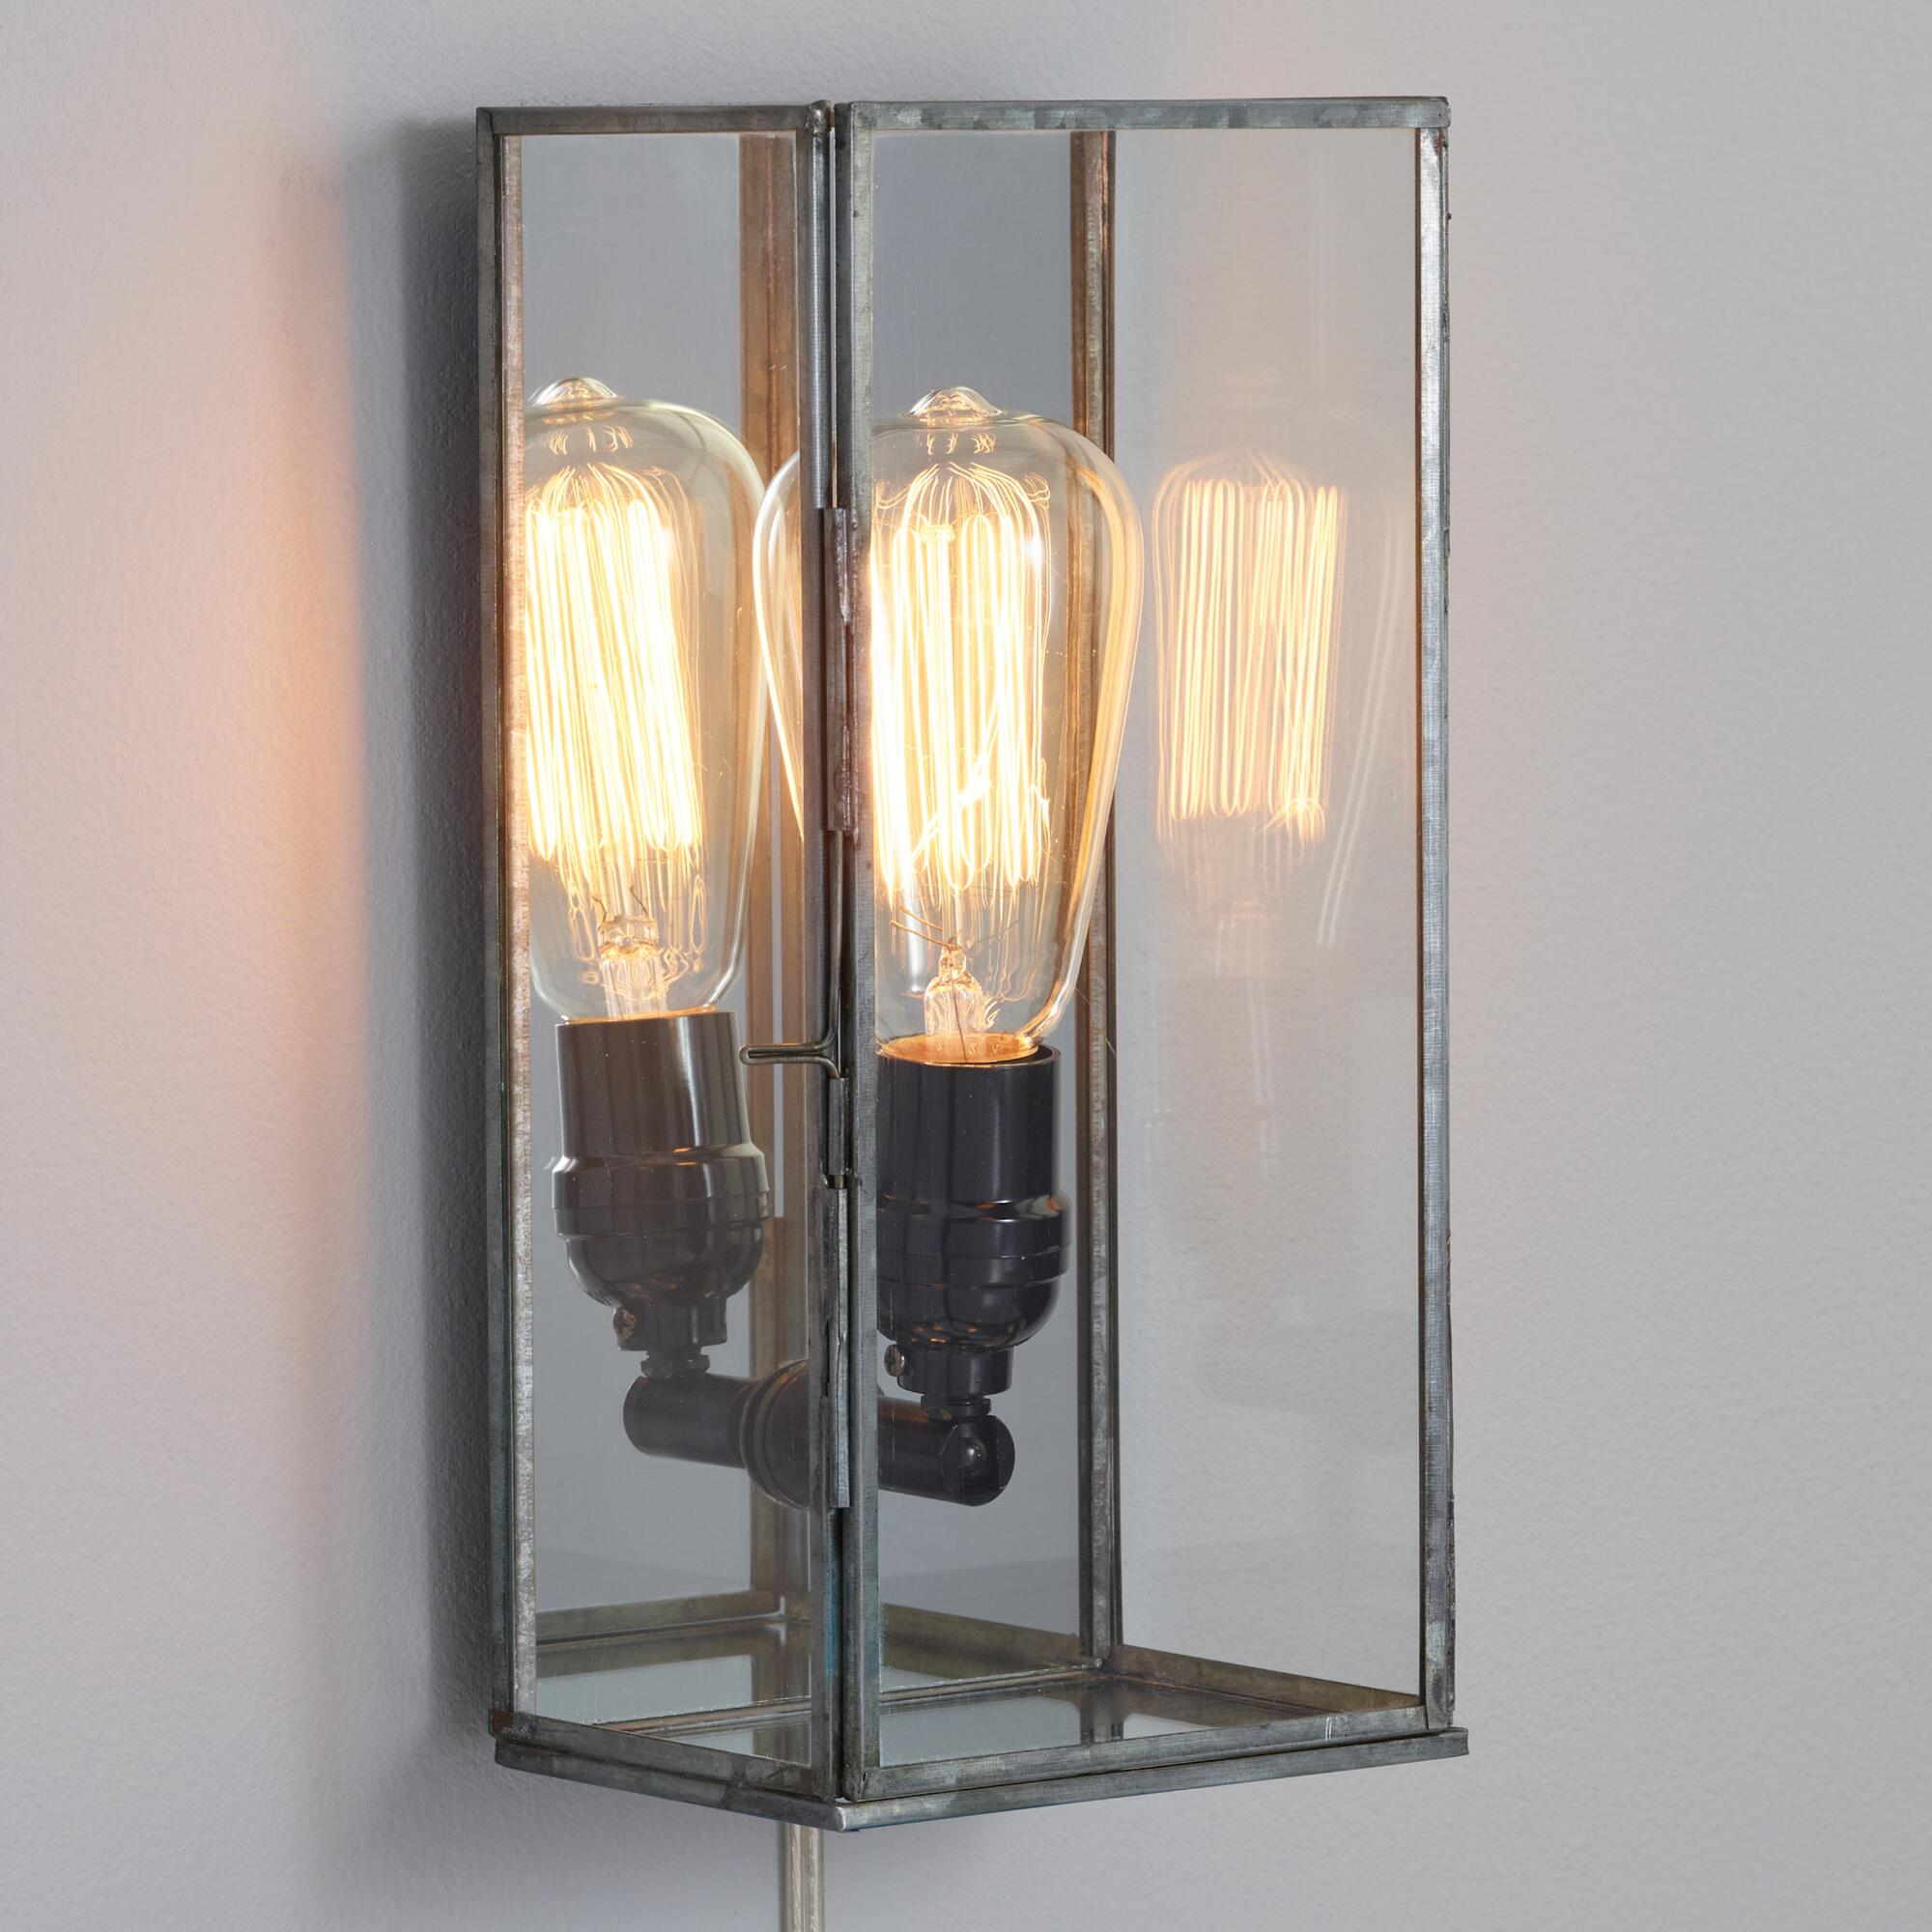 Glass rectangle nora wall sconce world market amipublicfo Image collections